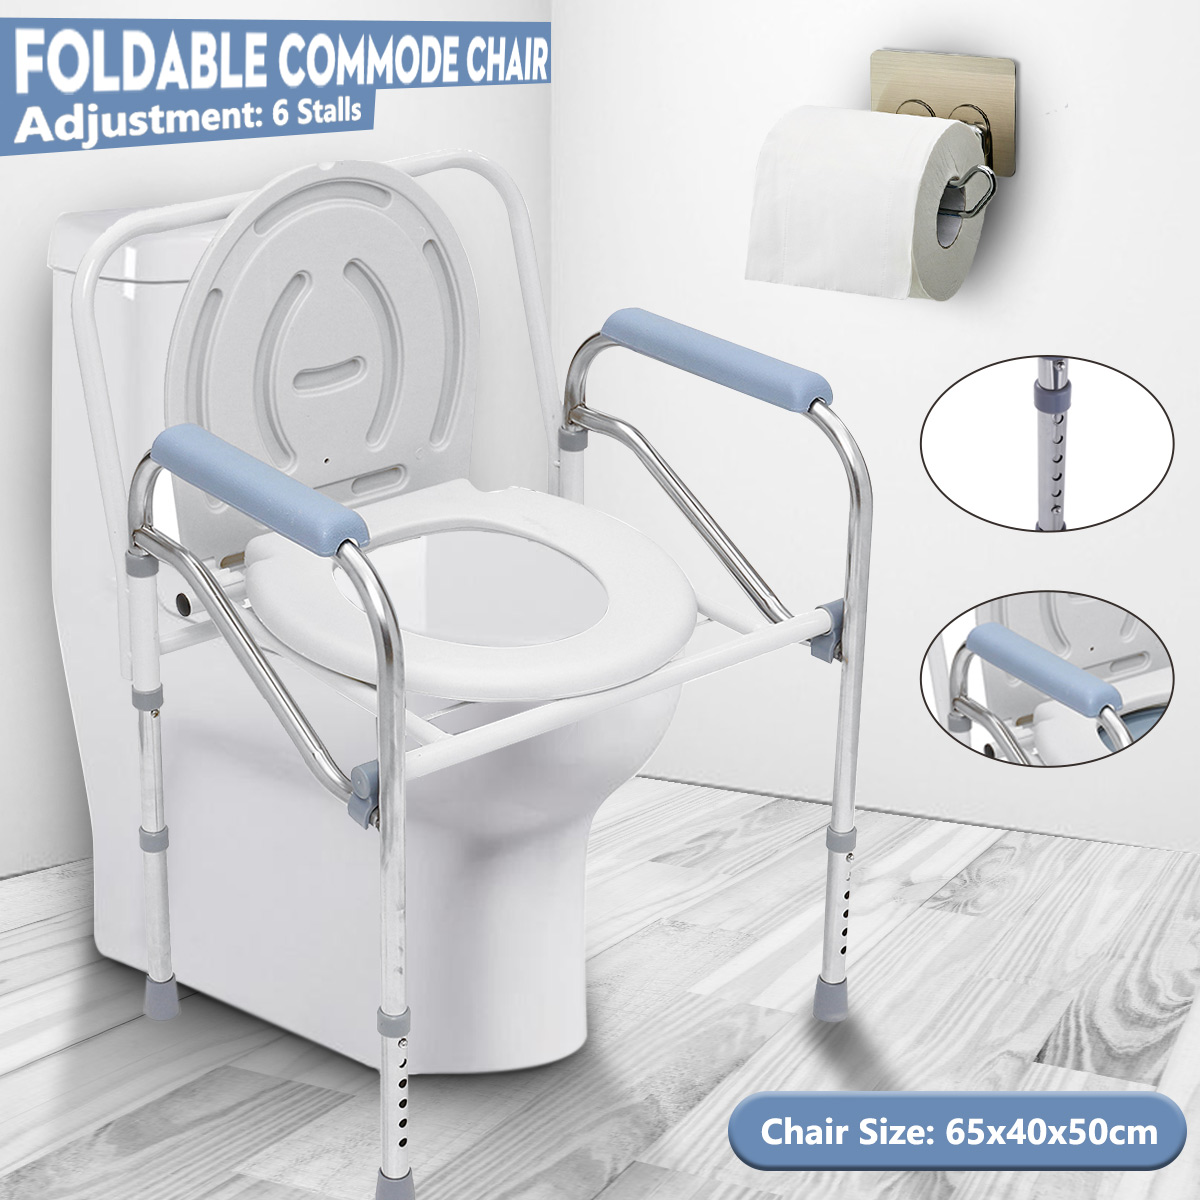 Portable Potty Chair Toilet Foldable Adjustable Commode Chair Closestool Chamber Pot For Elderly Men Women Stainless Steel